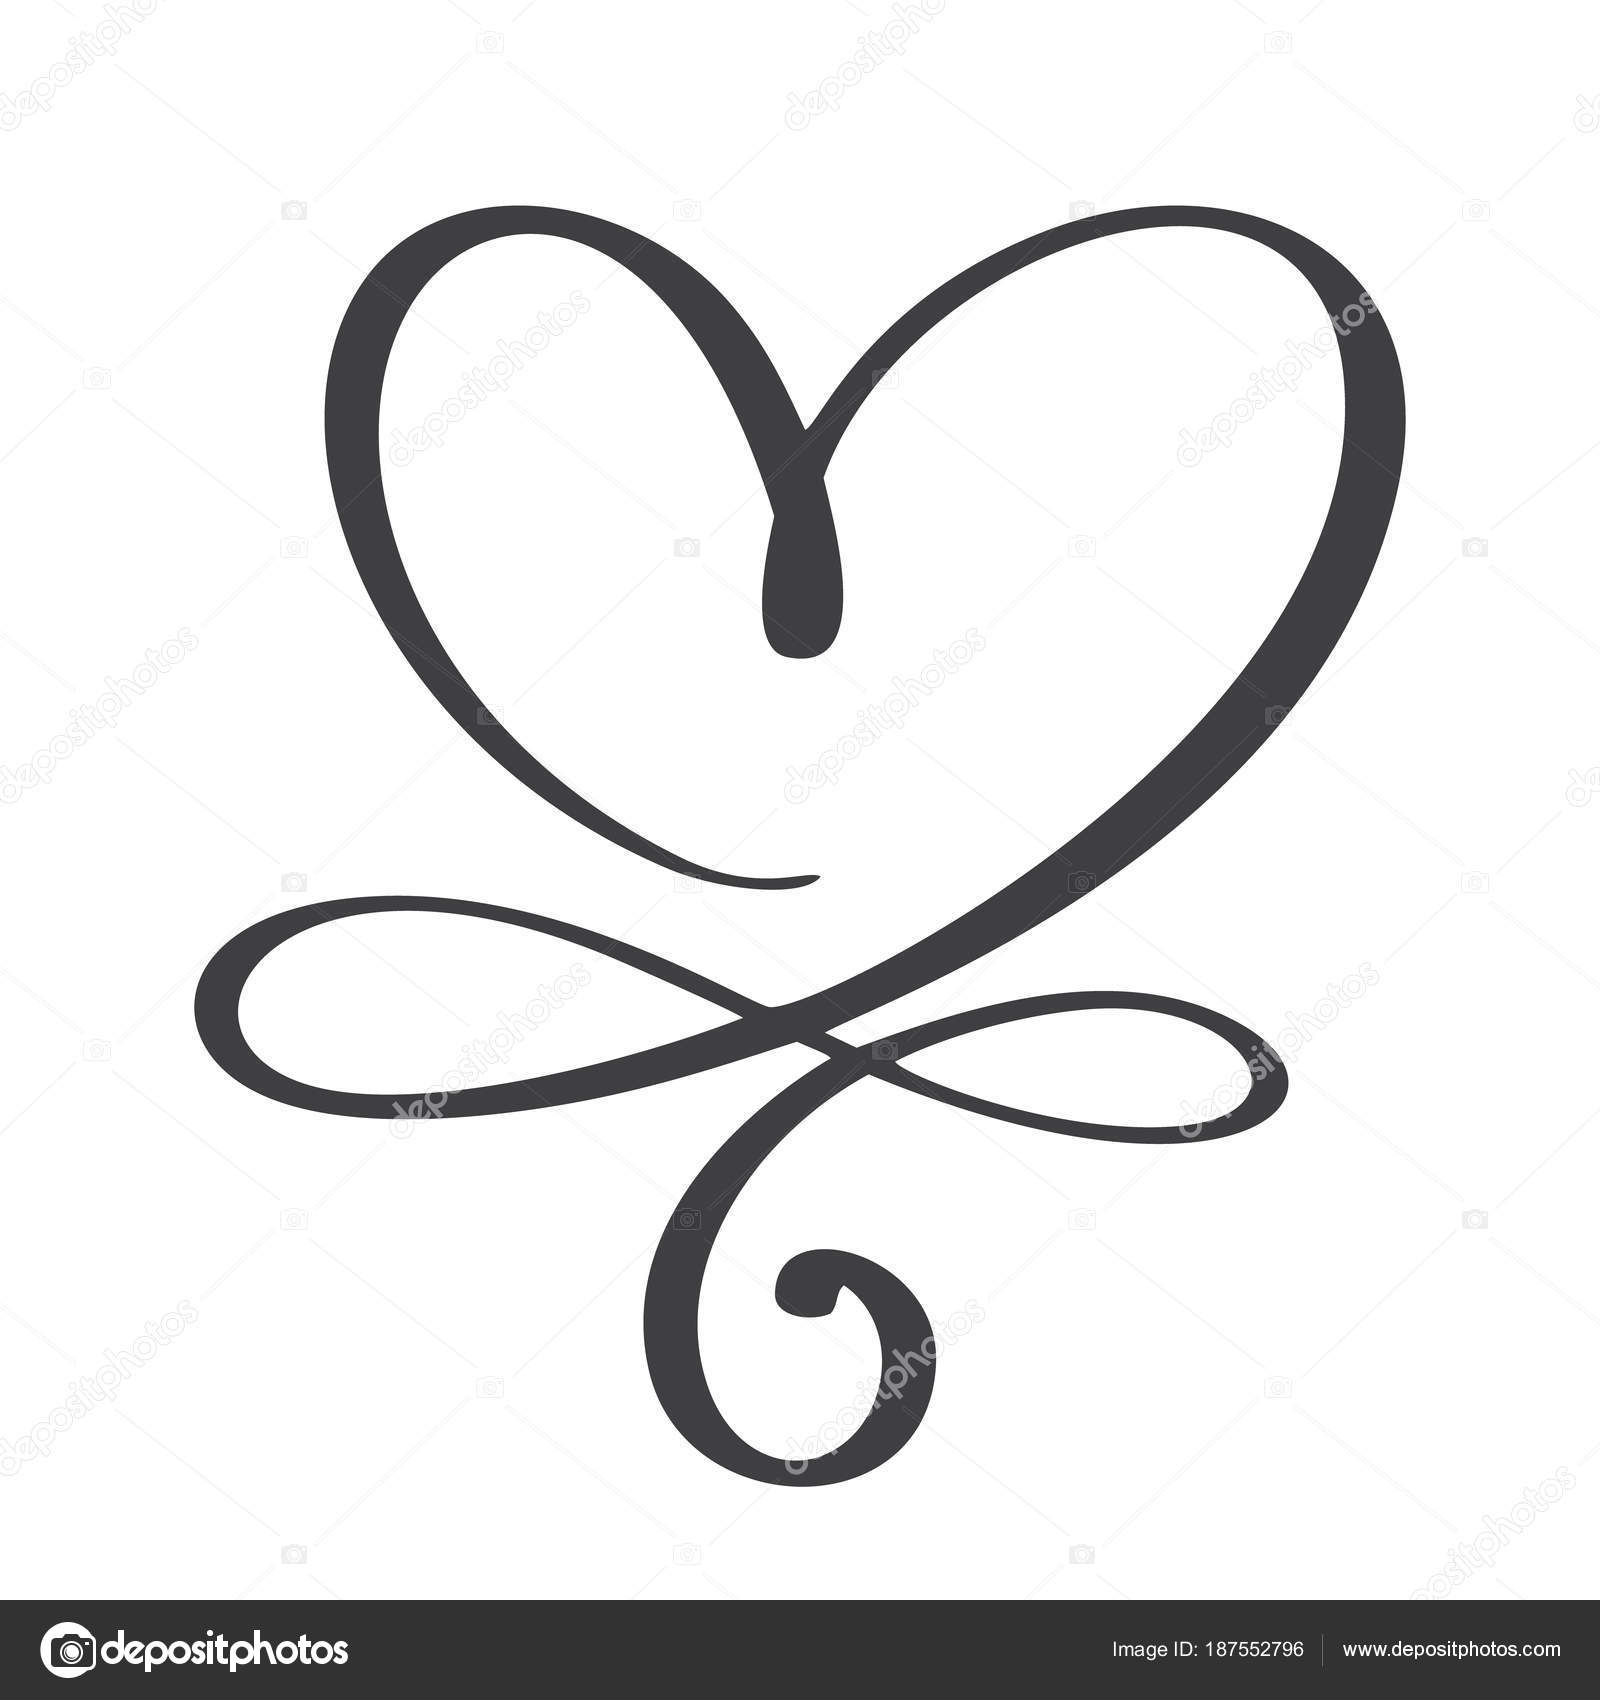 Heart Love Sign Forever Infinity Romantic Symbol Linked